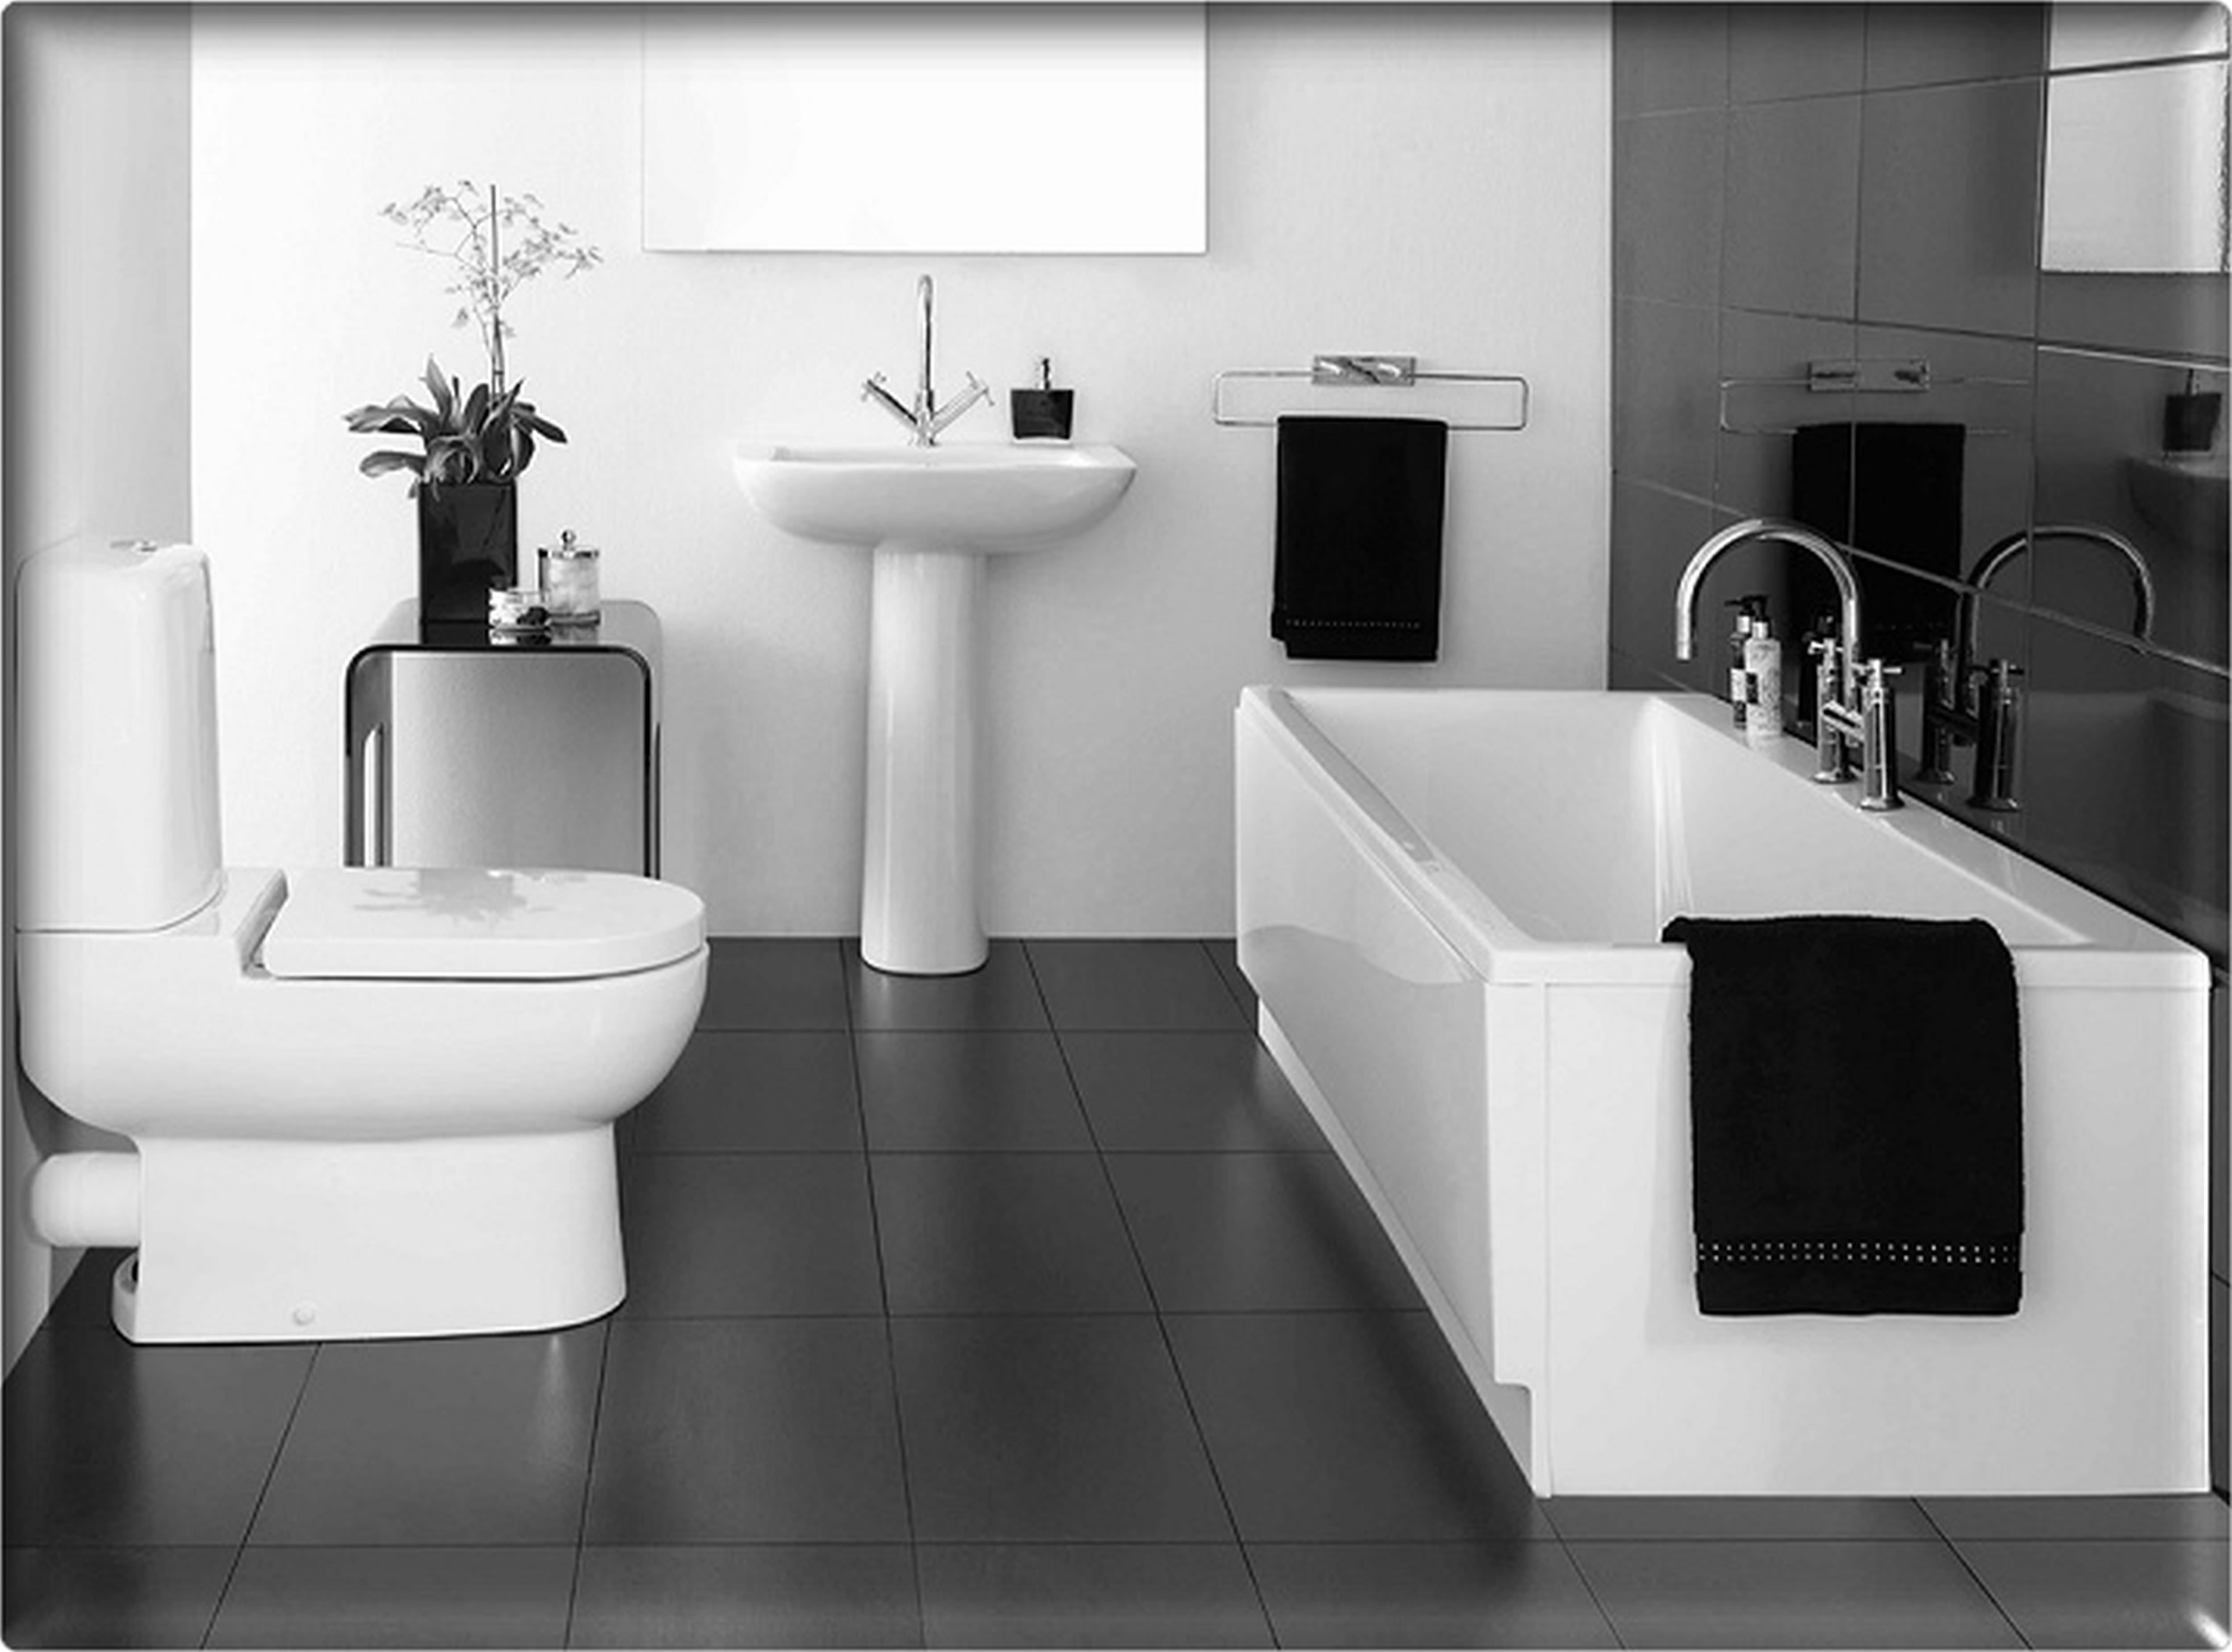 black and white bathroom design bathroom designs. Black Bedroom Furniture Sets. Home Design Ideas